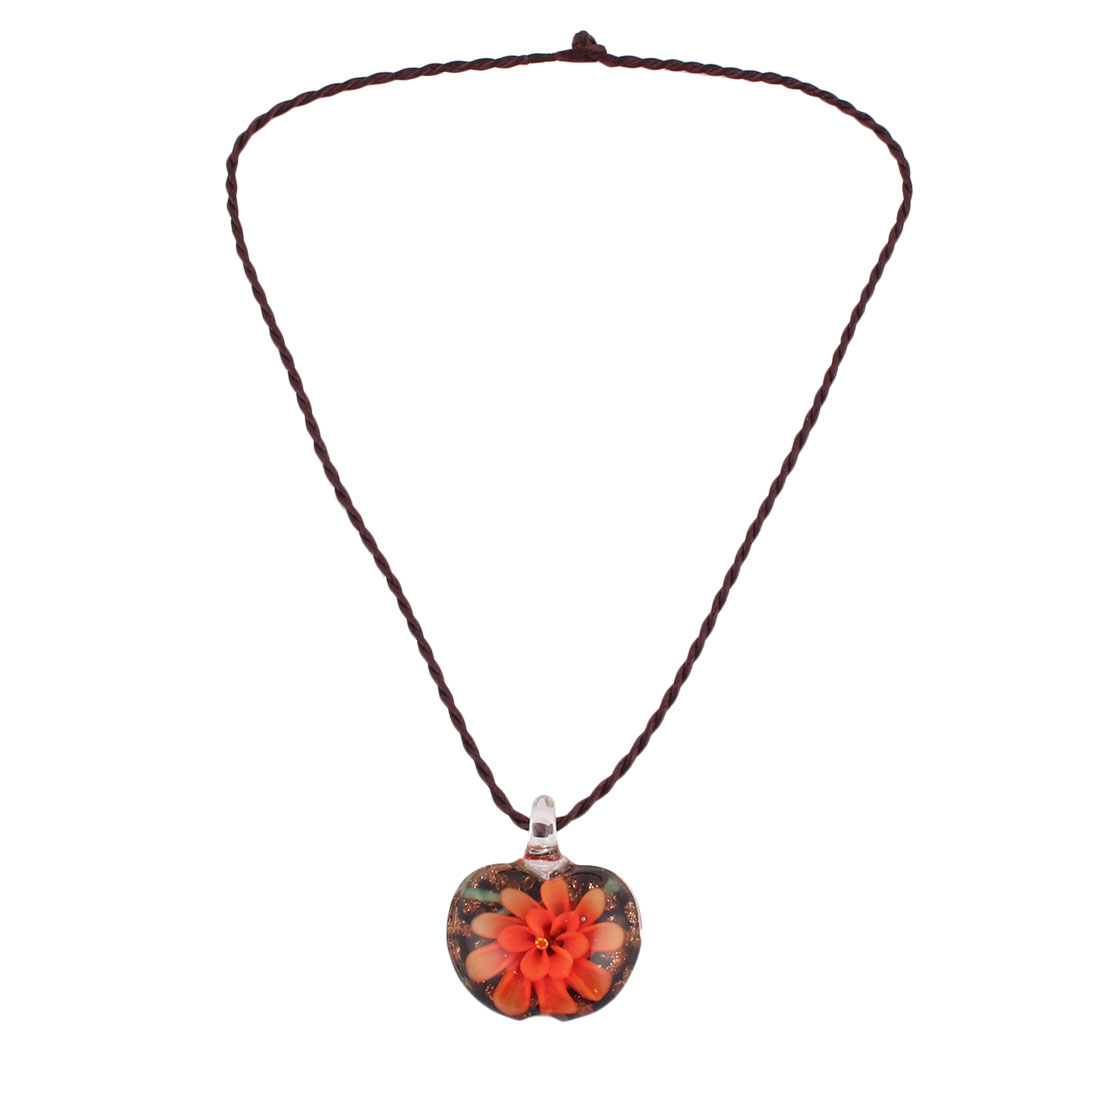 Travel Party Ladies Women Glass Flower Pattern Pendant Neck Ornament Necklace Orange